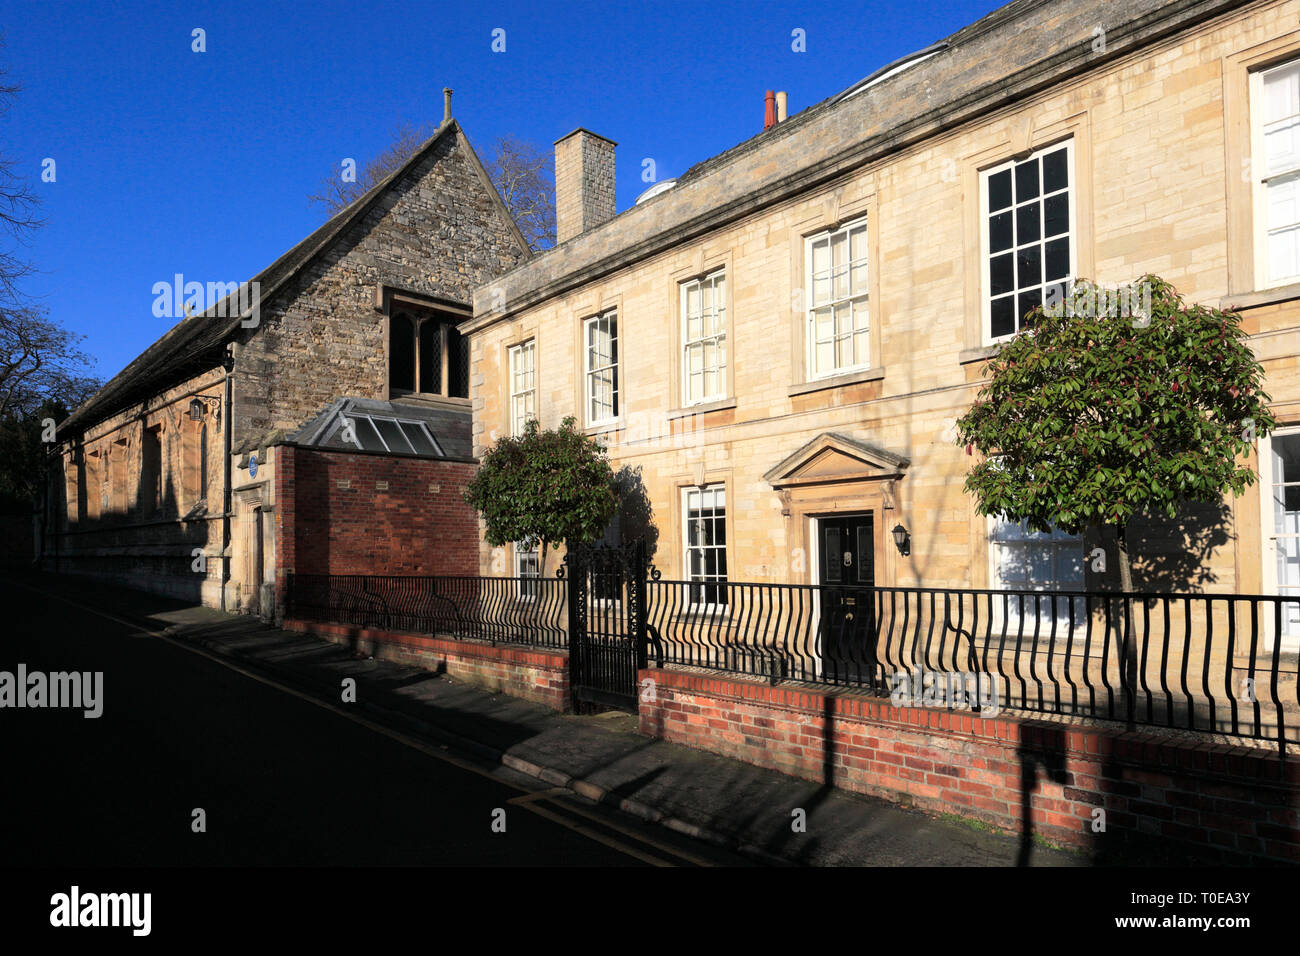 The Kings school hall, Castlegate, Grantham town, Lincolnshire, England; UK - Stock Image